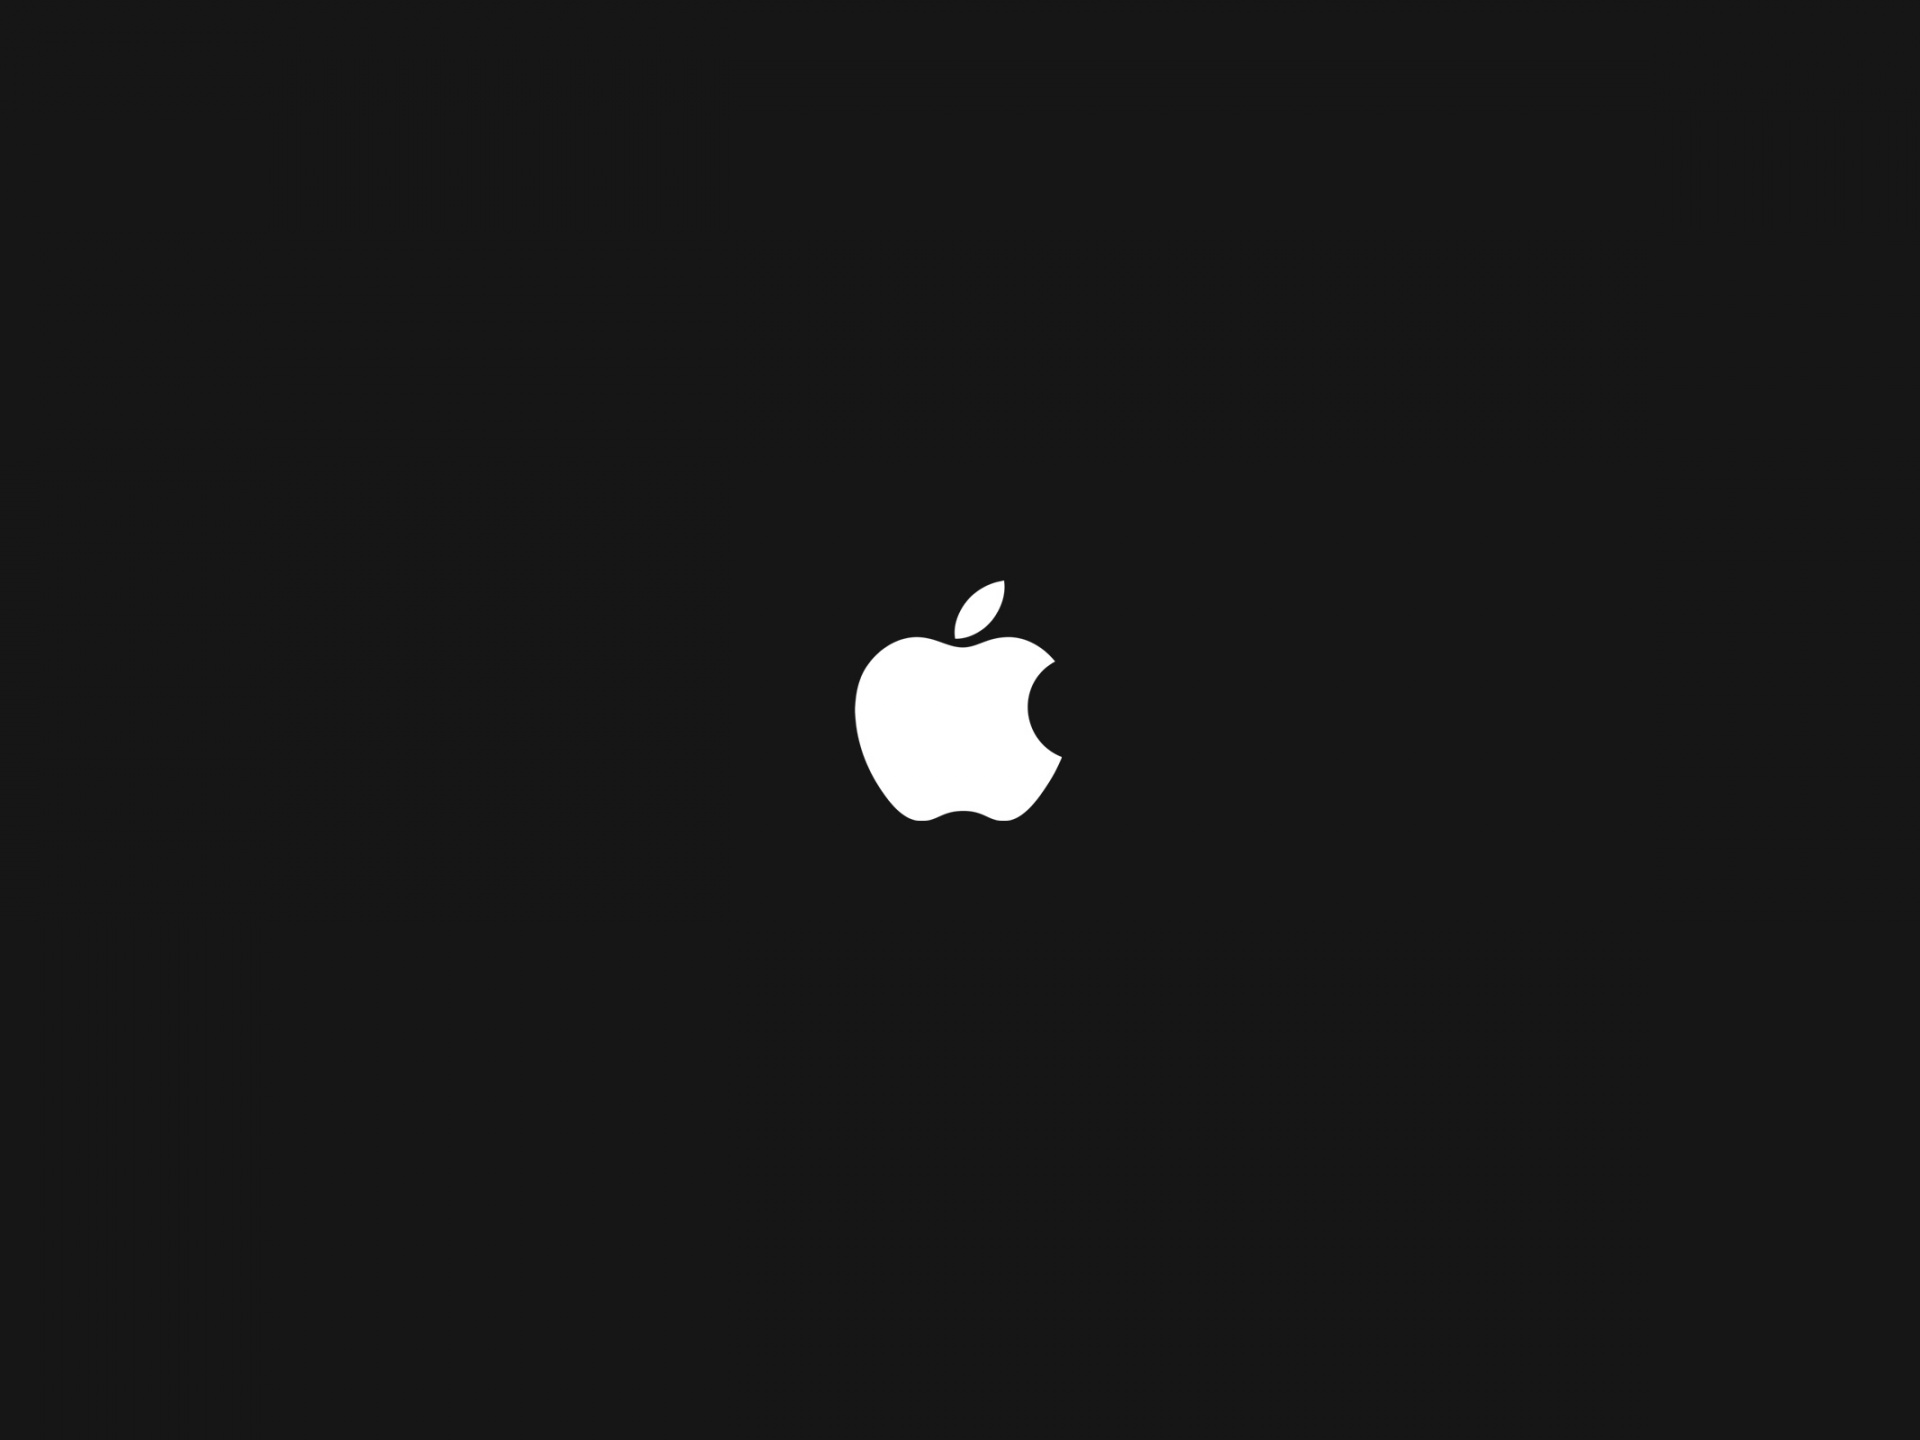 Brandy Logo Photos, White Apple Logo on Black Background, is an Impressive Item 1920X1440 free wallpaper download